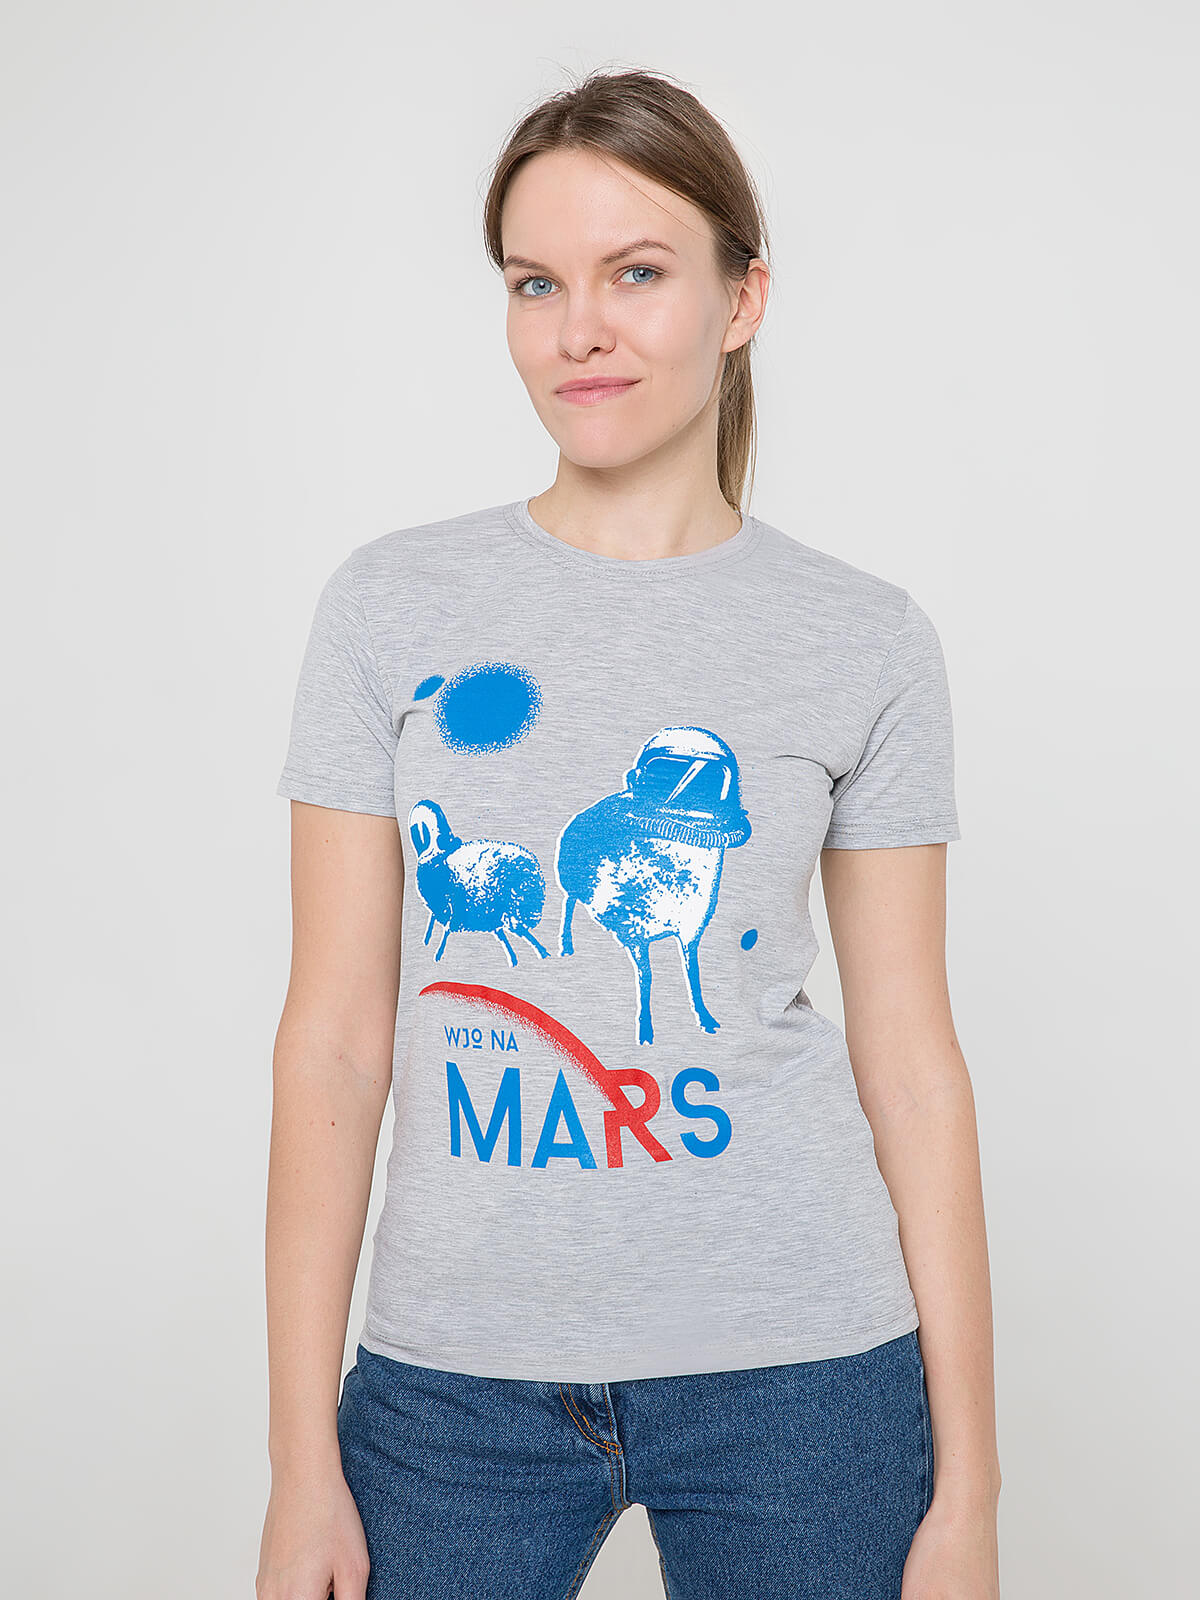 Women's T-Shirt Wjo Na Mars. Color gray. Material: 95% cotton, 5% spandex.